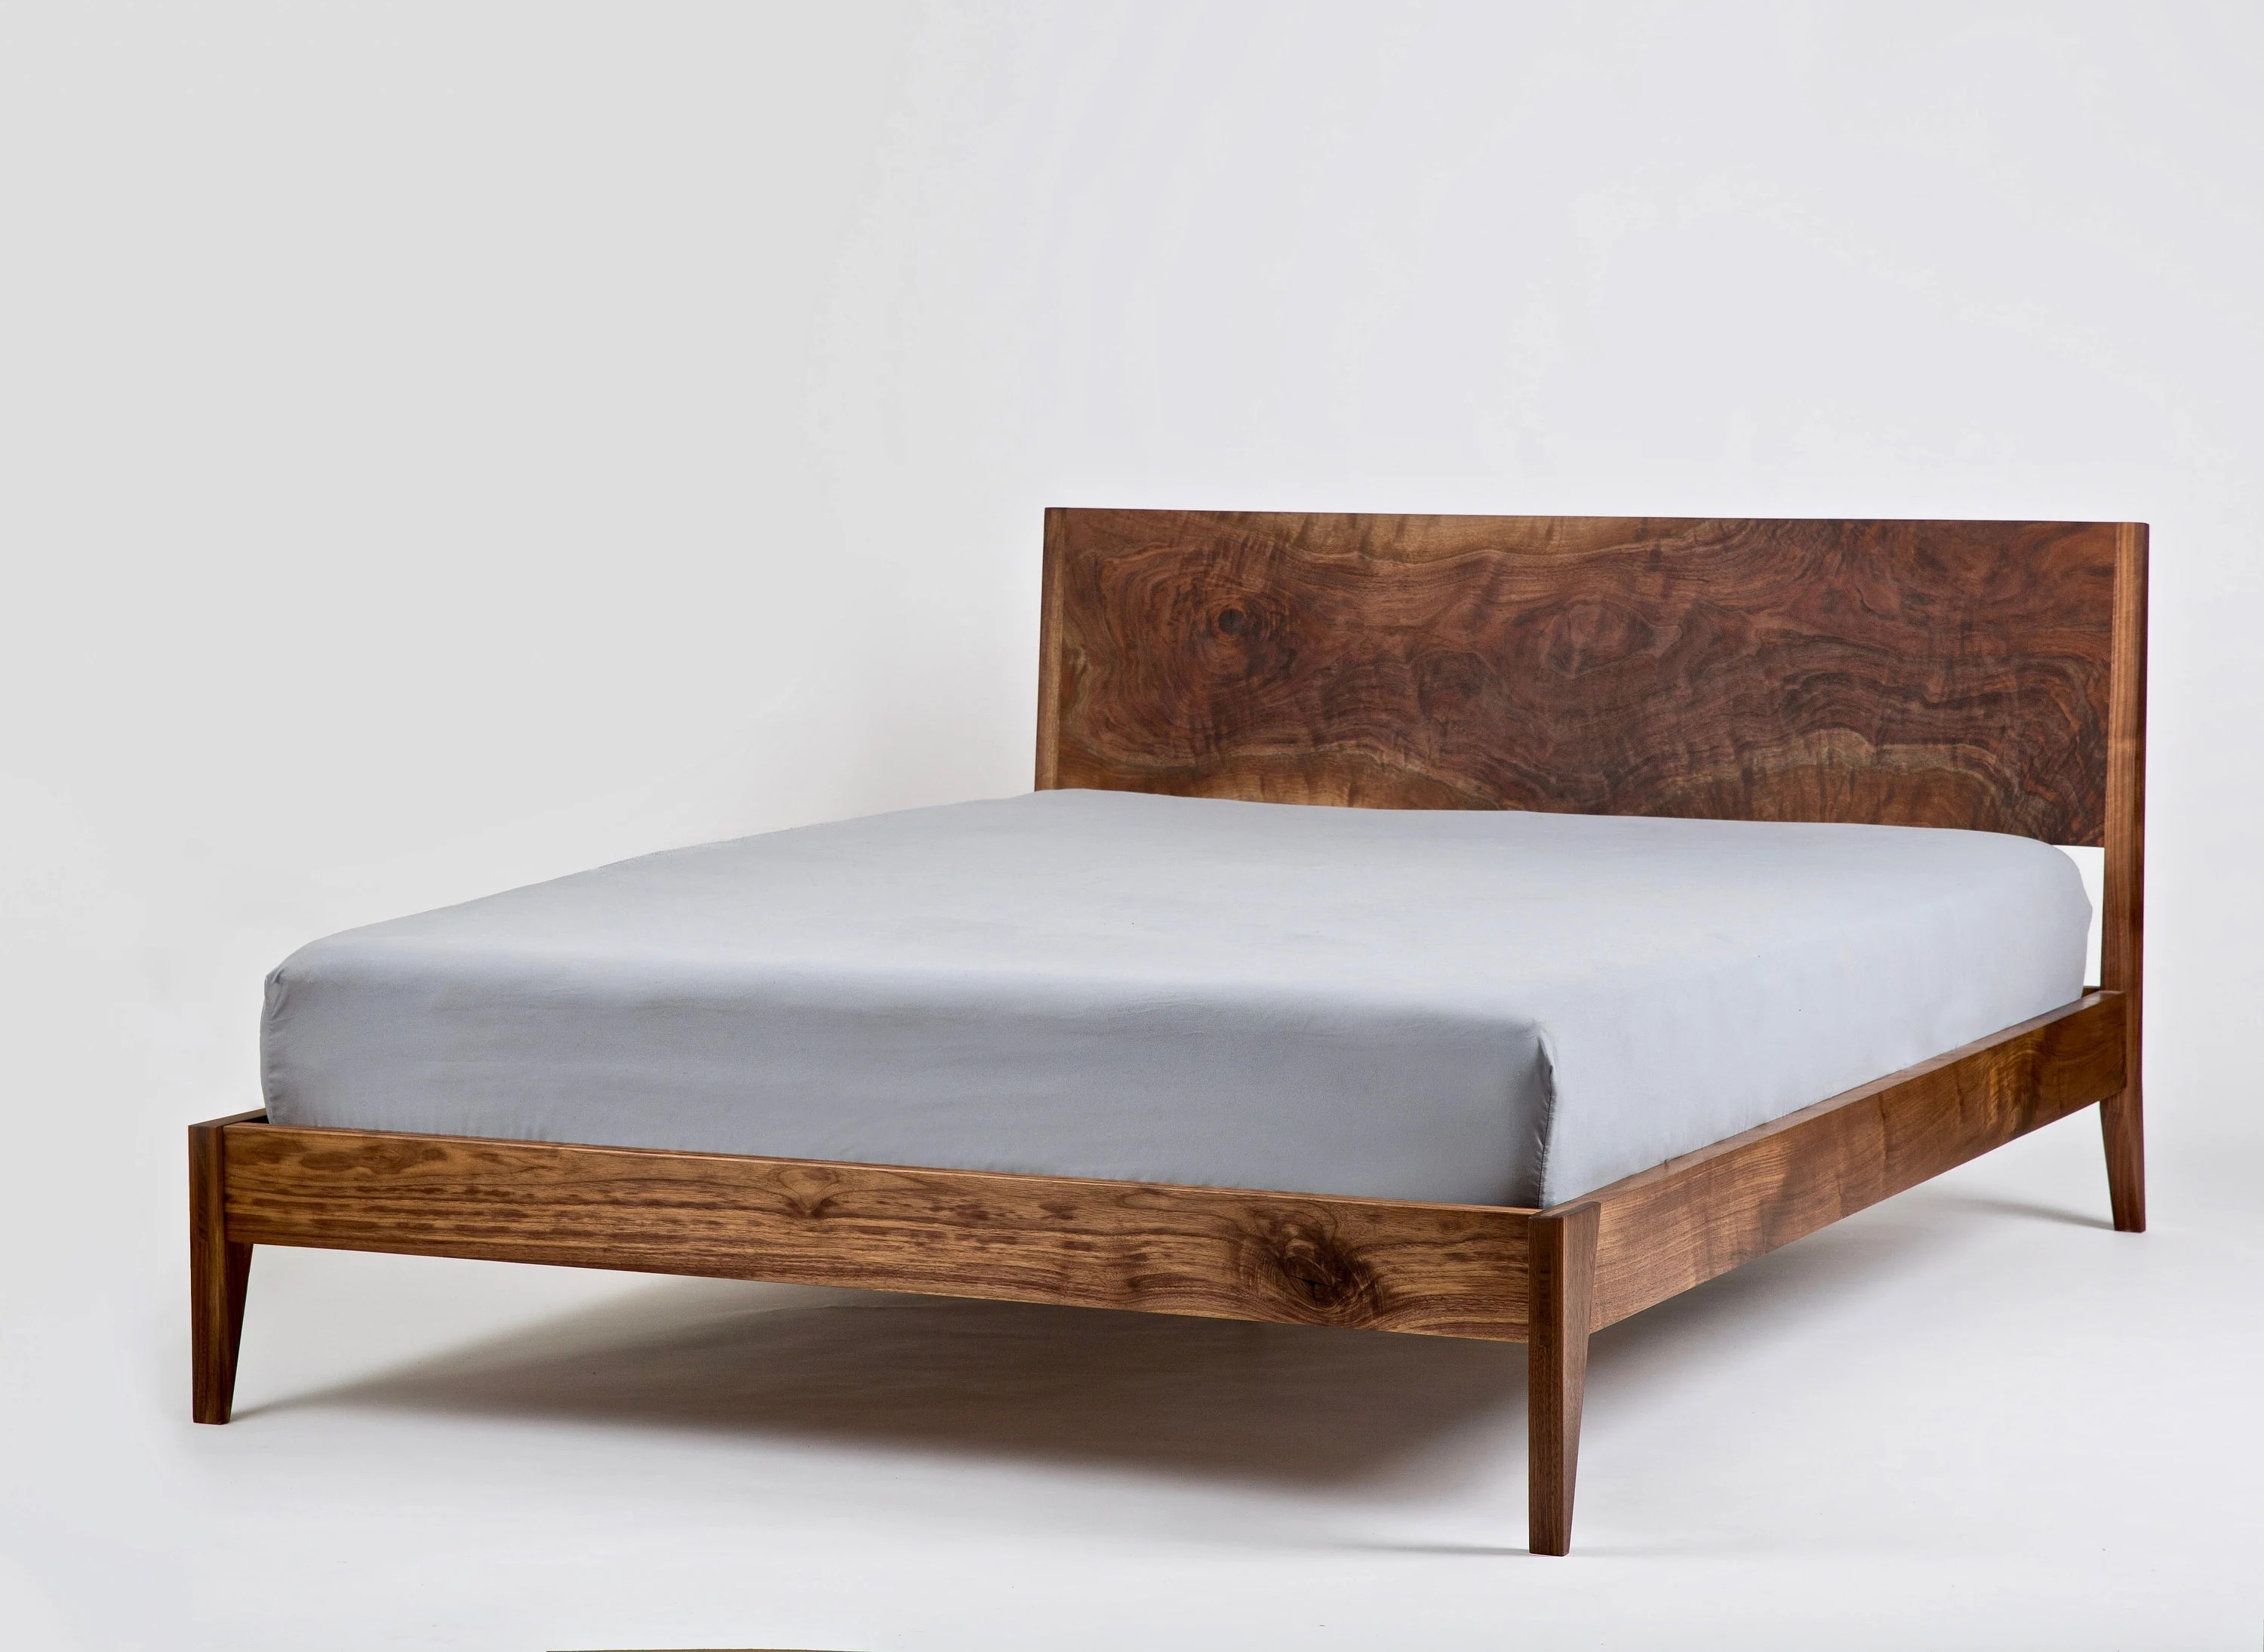 solid wood platform bed walnut bed mid century modern bedframe and headboard storage bed custom made furniture king queen full